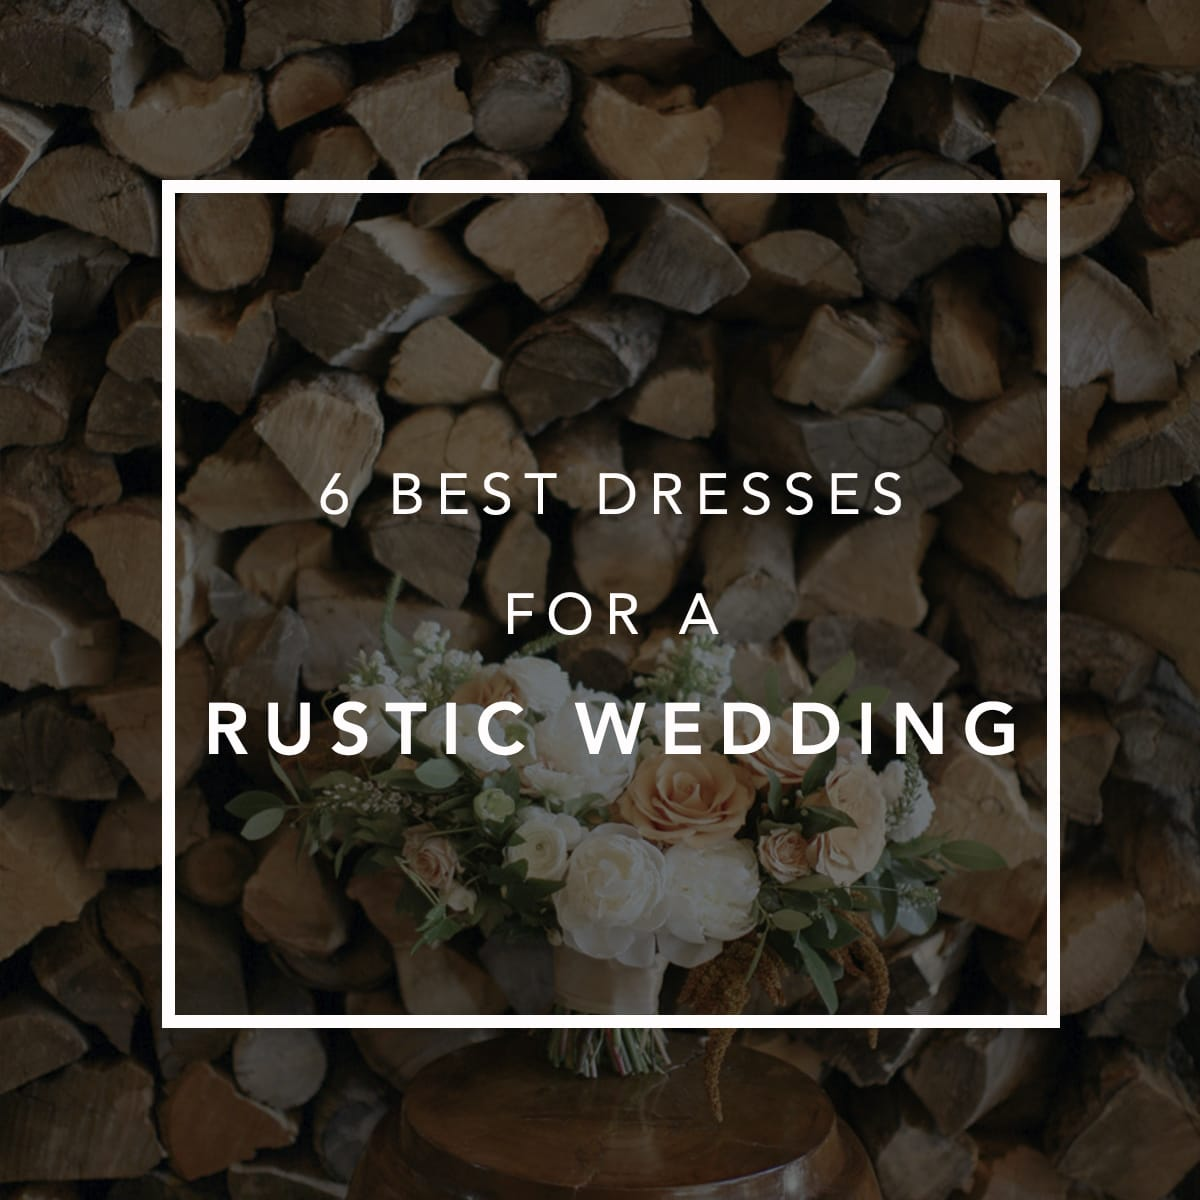 6 Best Dresses for a Rustic Wedding Image